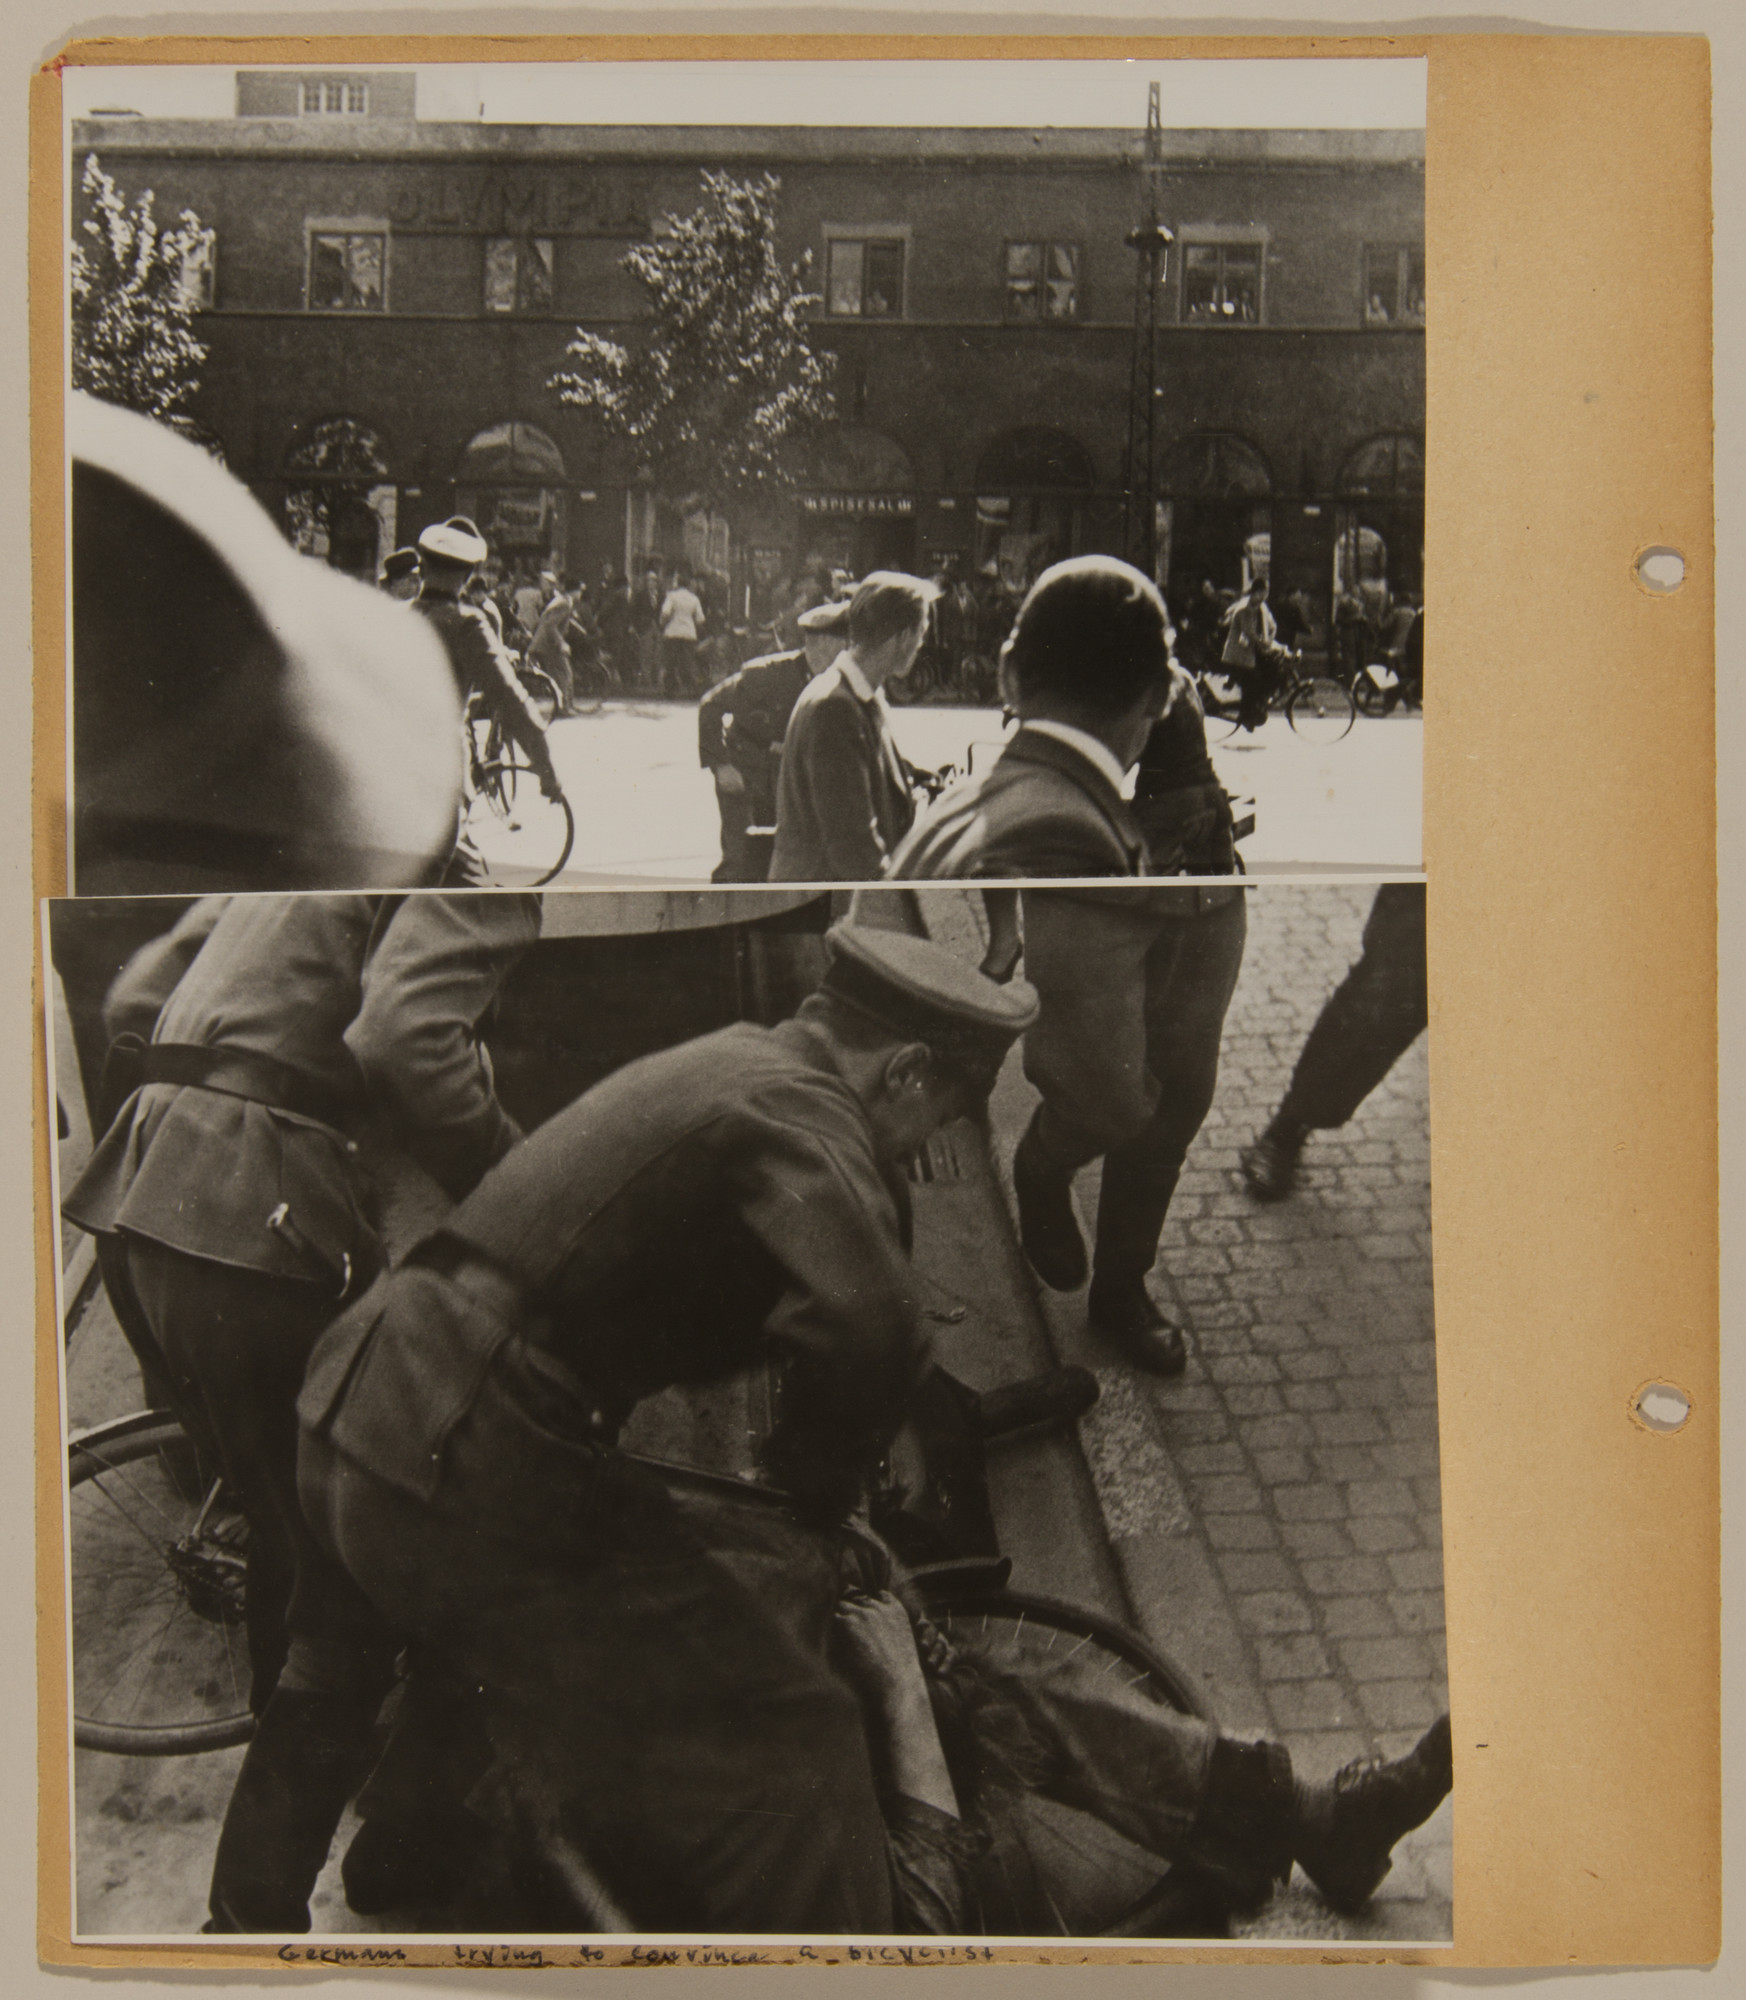 Page from volume four of a set of scrapbooks compiled by Bjorn Sibbern, a Danish policeman and resistance member, documenting the German occupation of Denmark.  The page contains photographs from a series showing German and Danish SS raids on civilians.